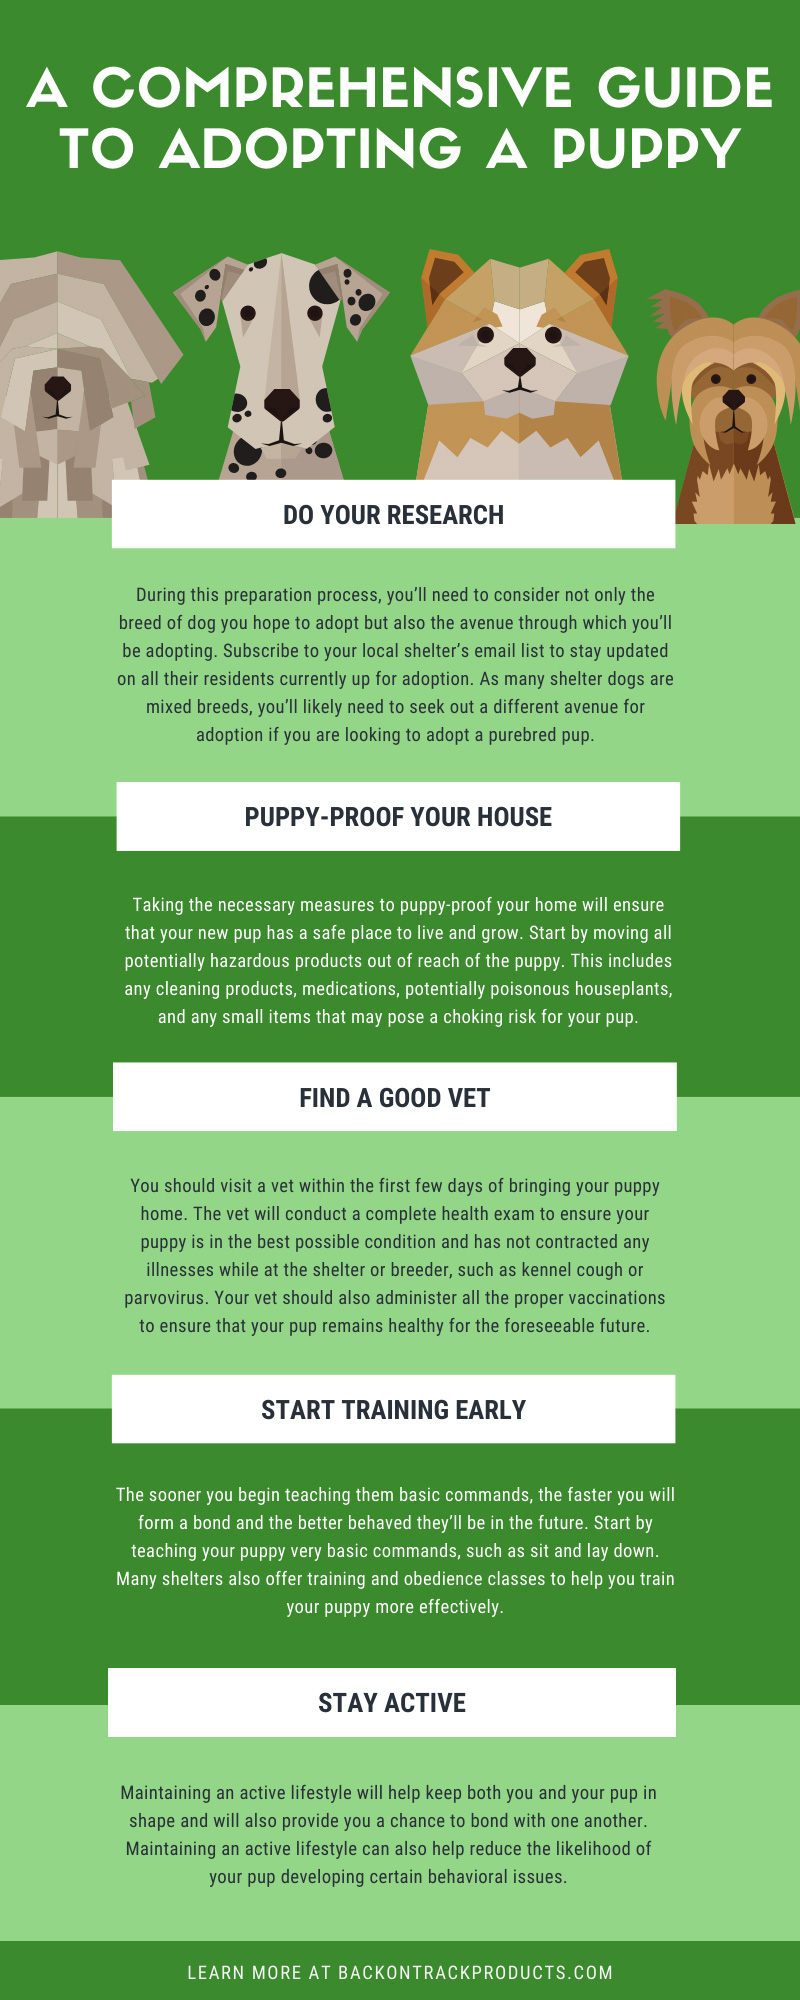 A Comprehensive Guide to Adopting a Puppy infographic